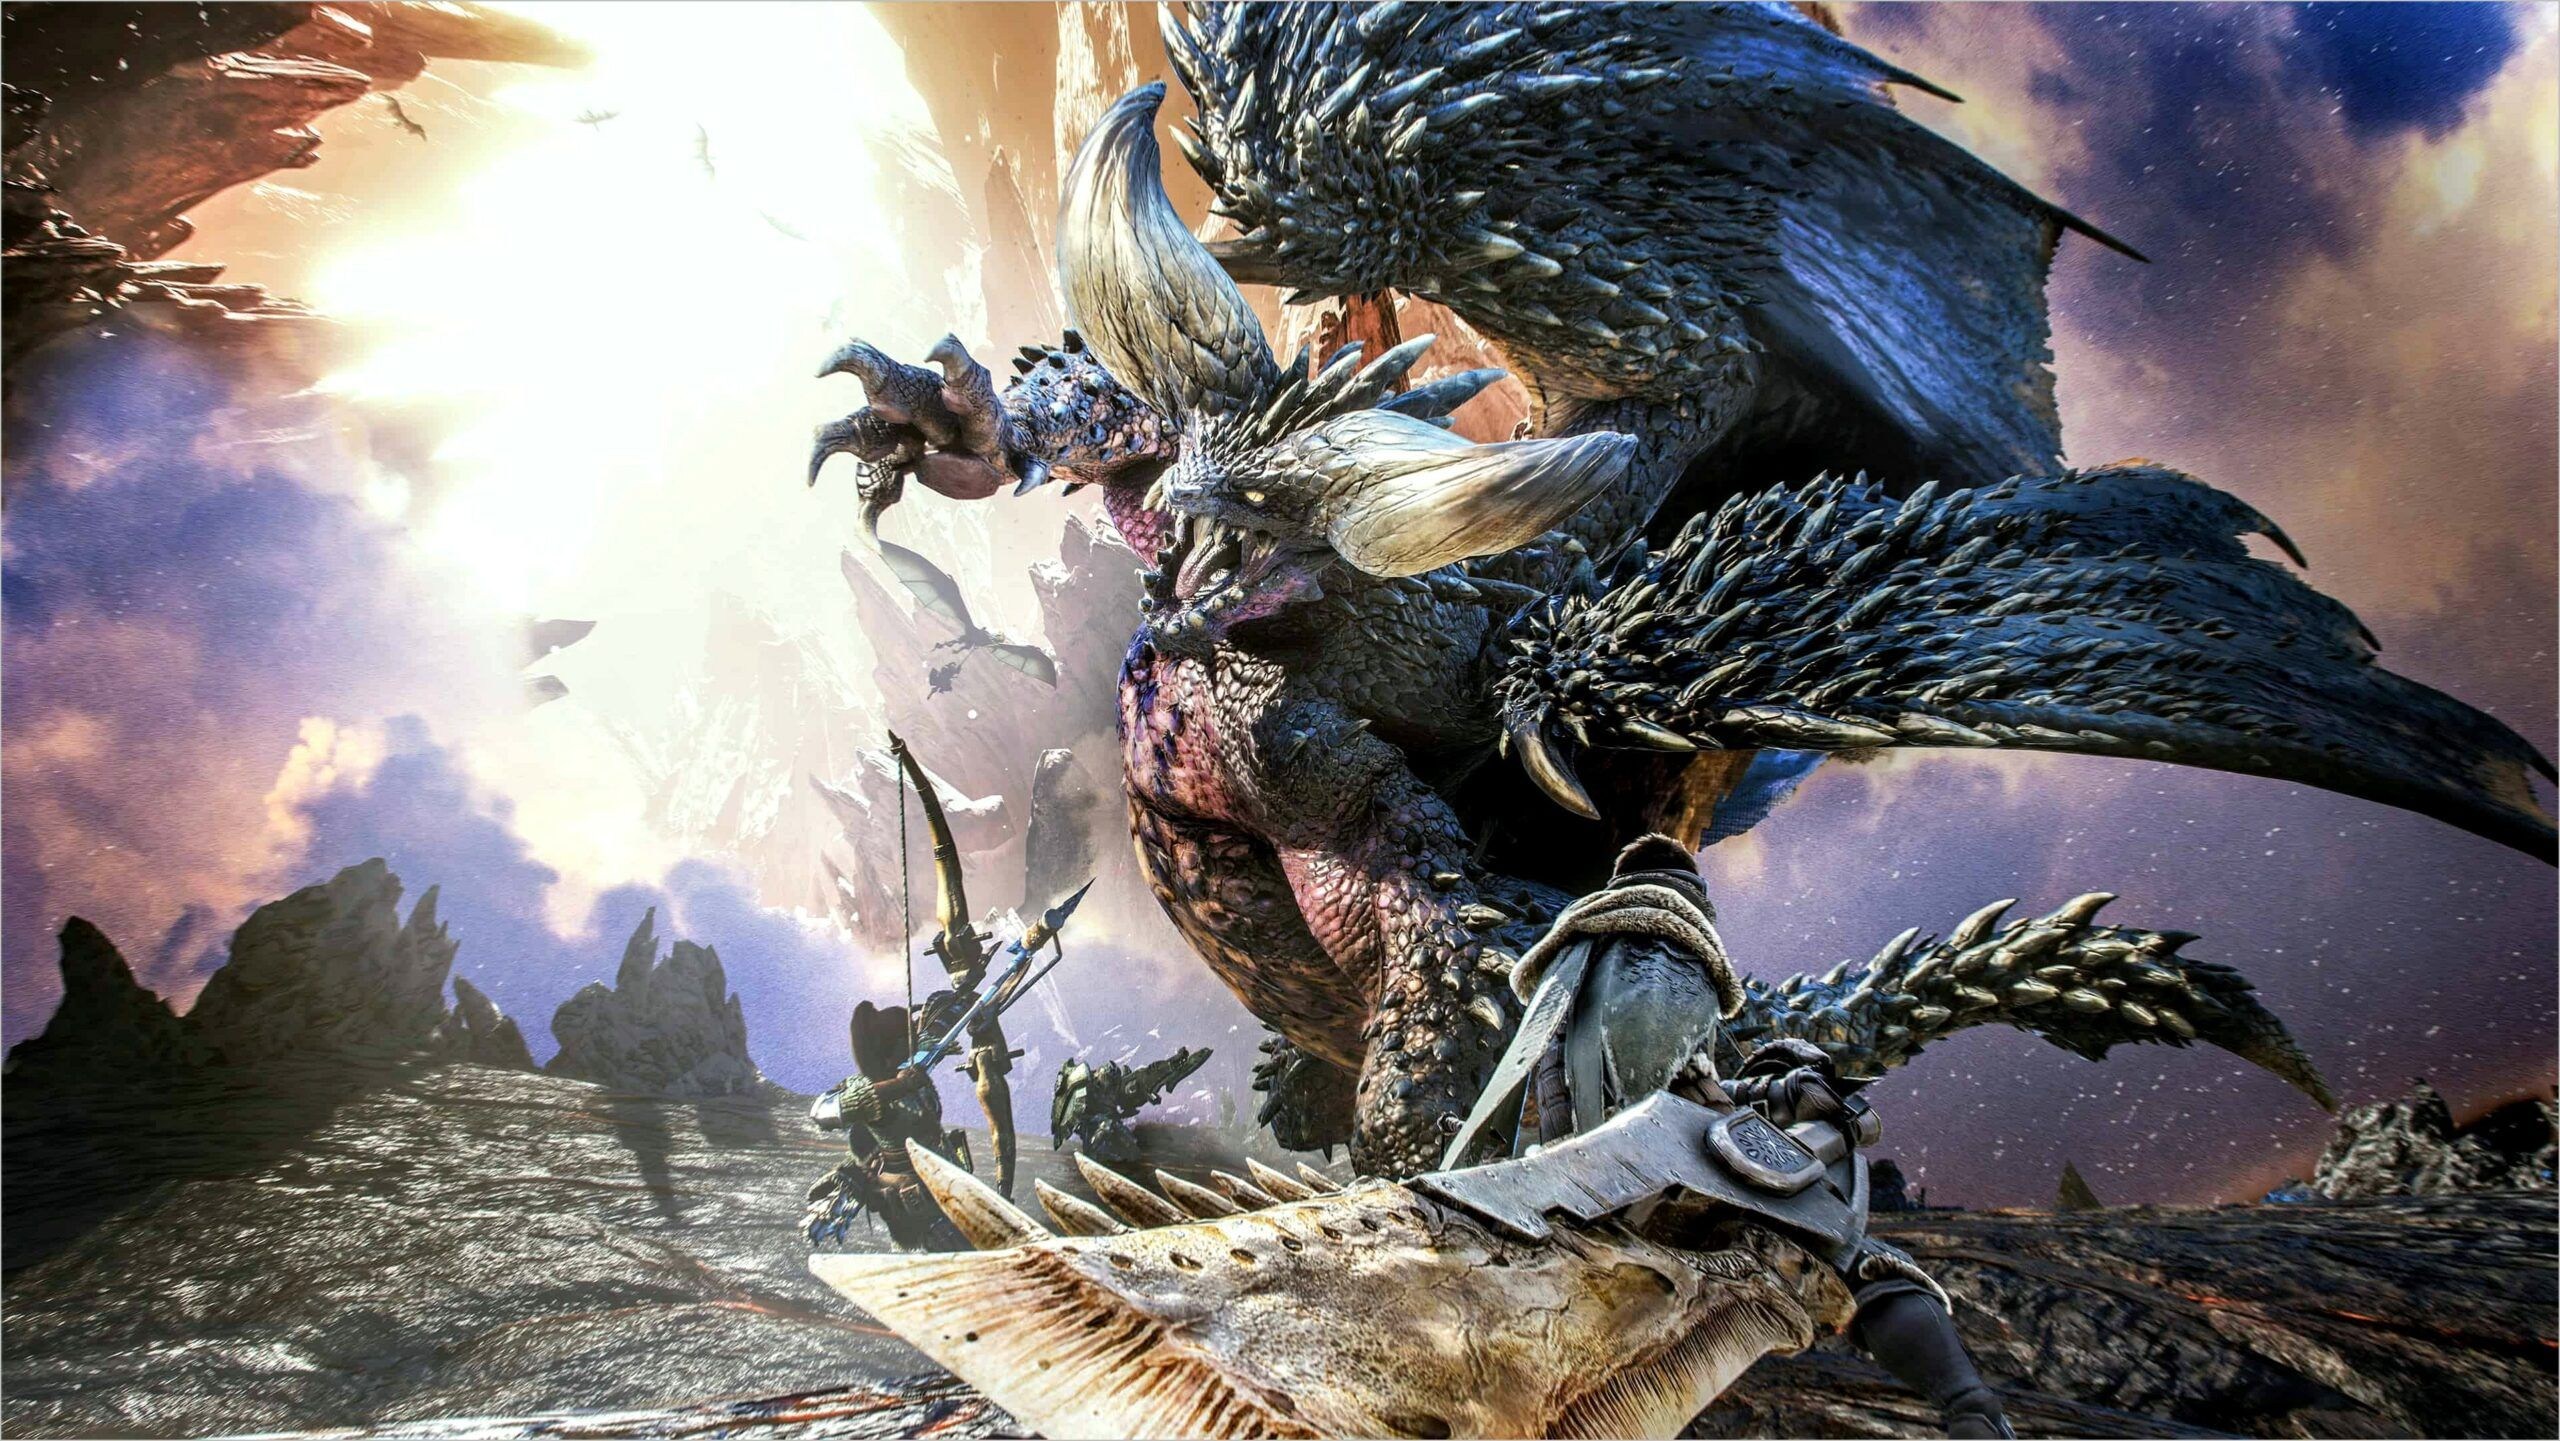 Norse Mythology 4k Wallpaper In 2020 Monster Hunter World Wallpaper Monster Hunter World Monster Hunter